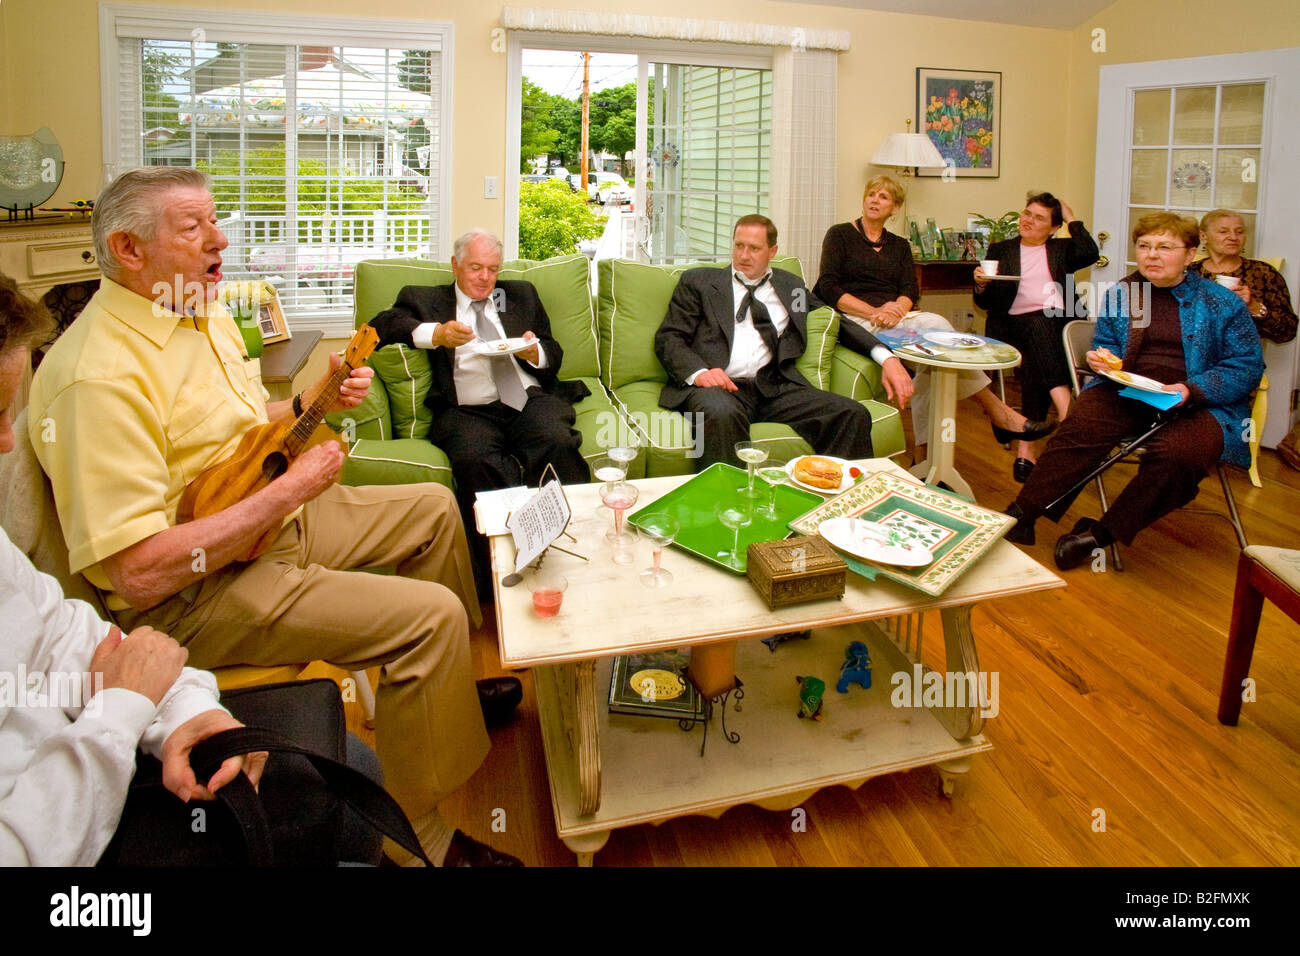 An elderly musician plays Irish folks songs on a ukelele for an appreciative audience in Stoneham Massachusetts - Stock Image